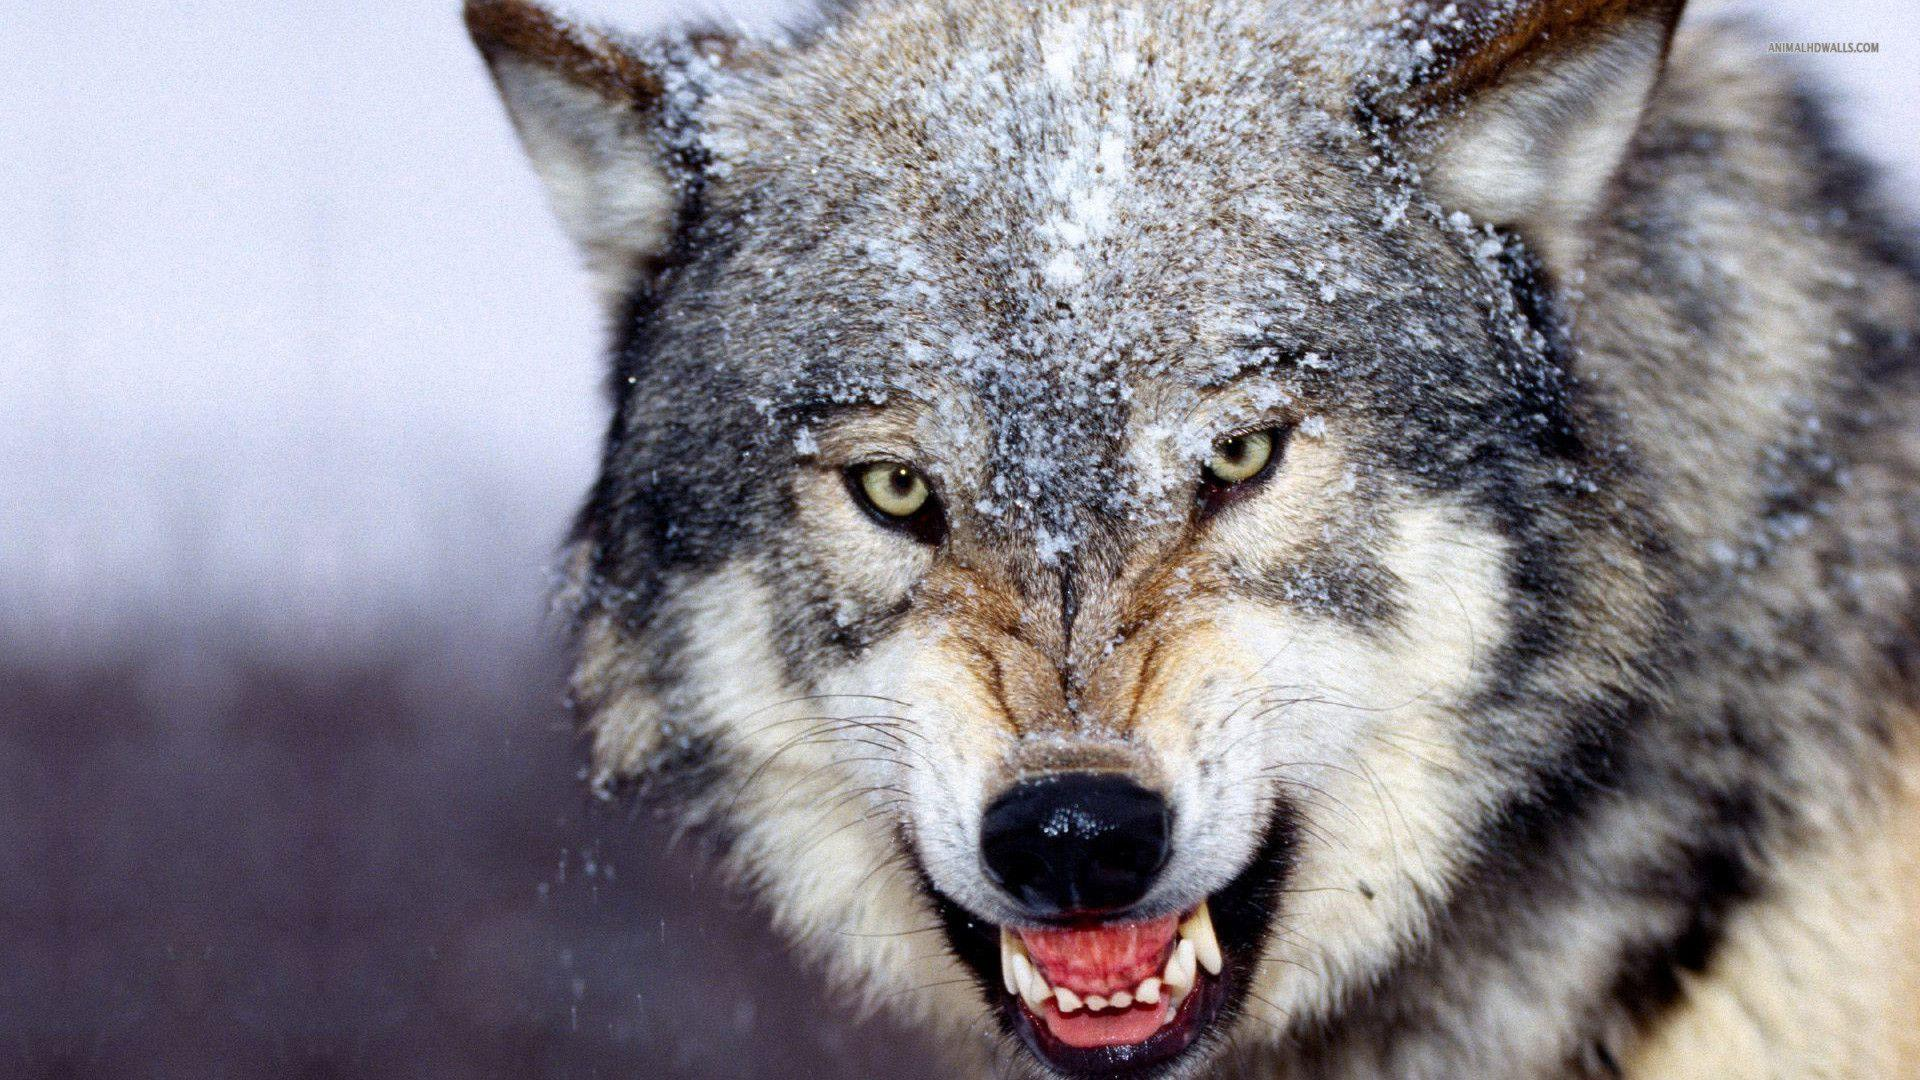 Hd wallpaper wolf - Hd Wolf Desktop Hd Wallpapers Wallpaper Database